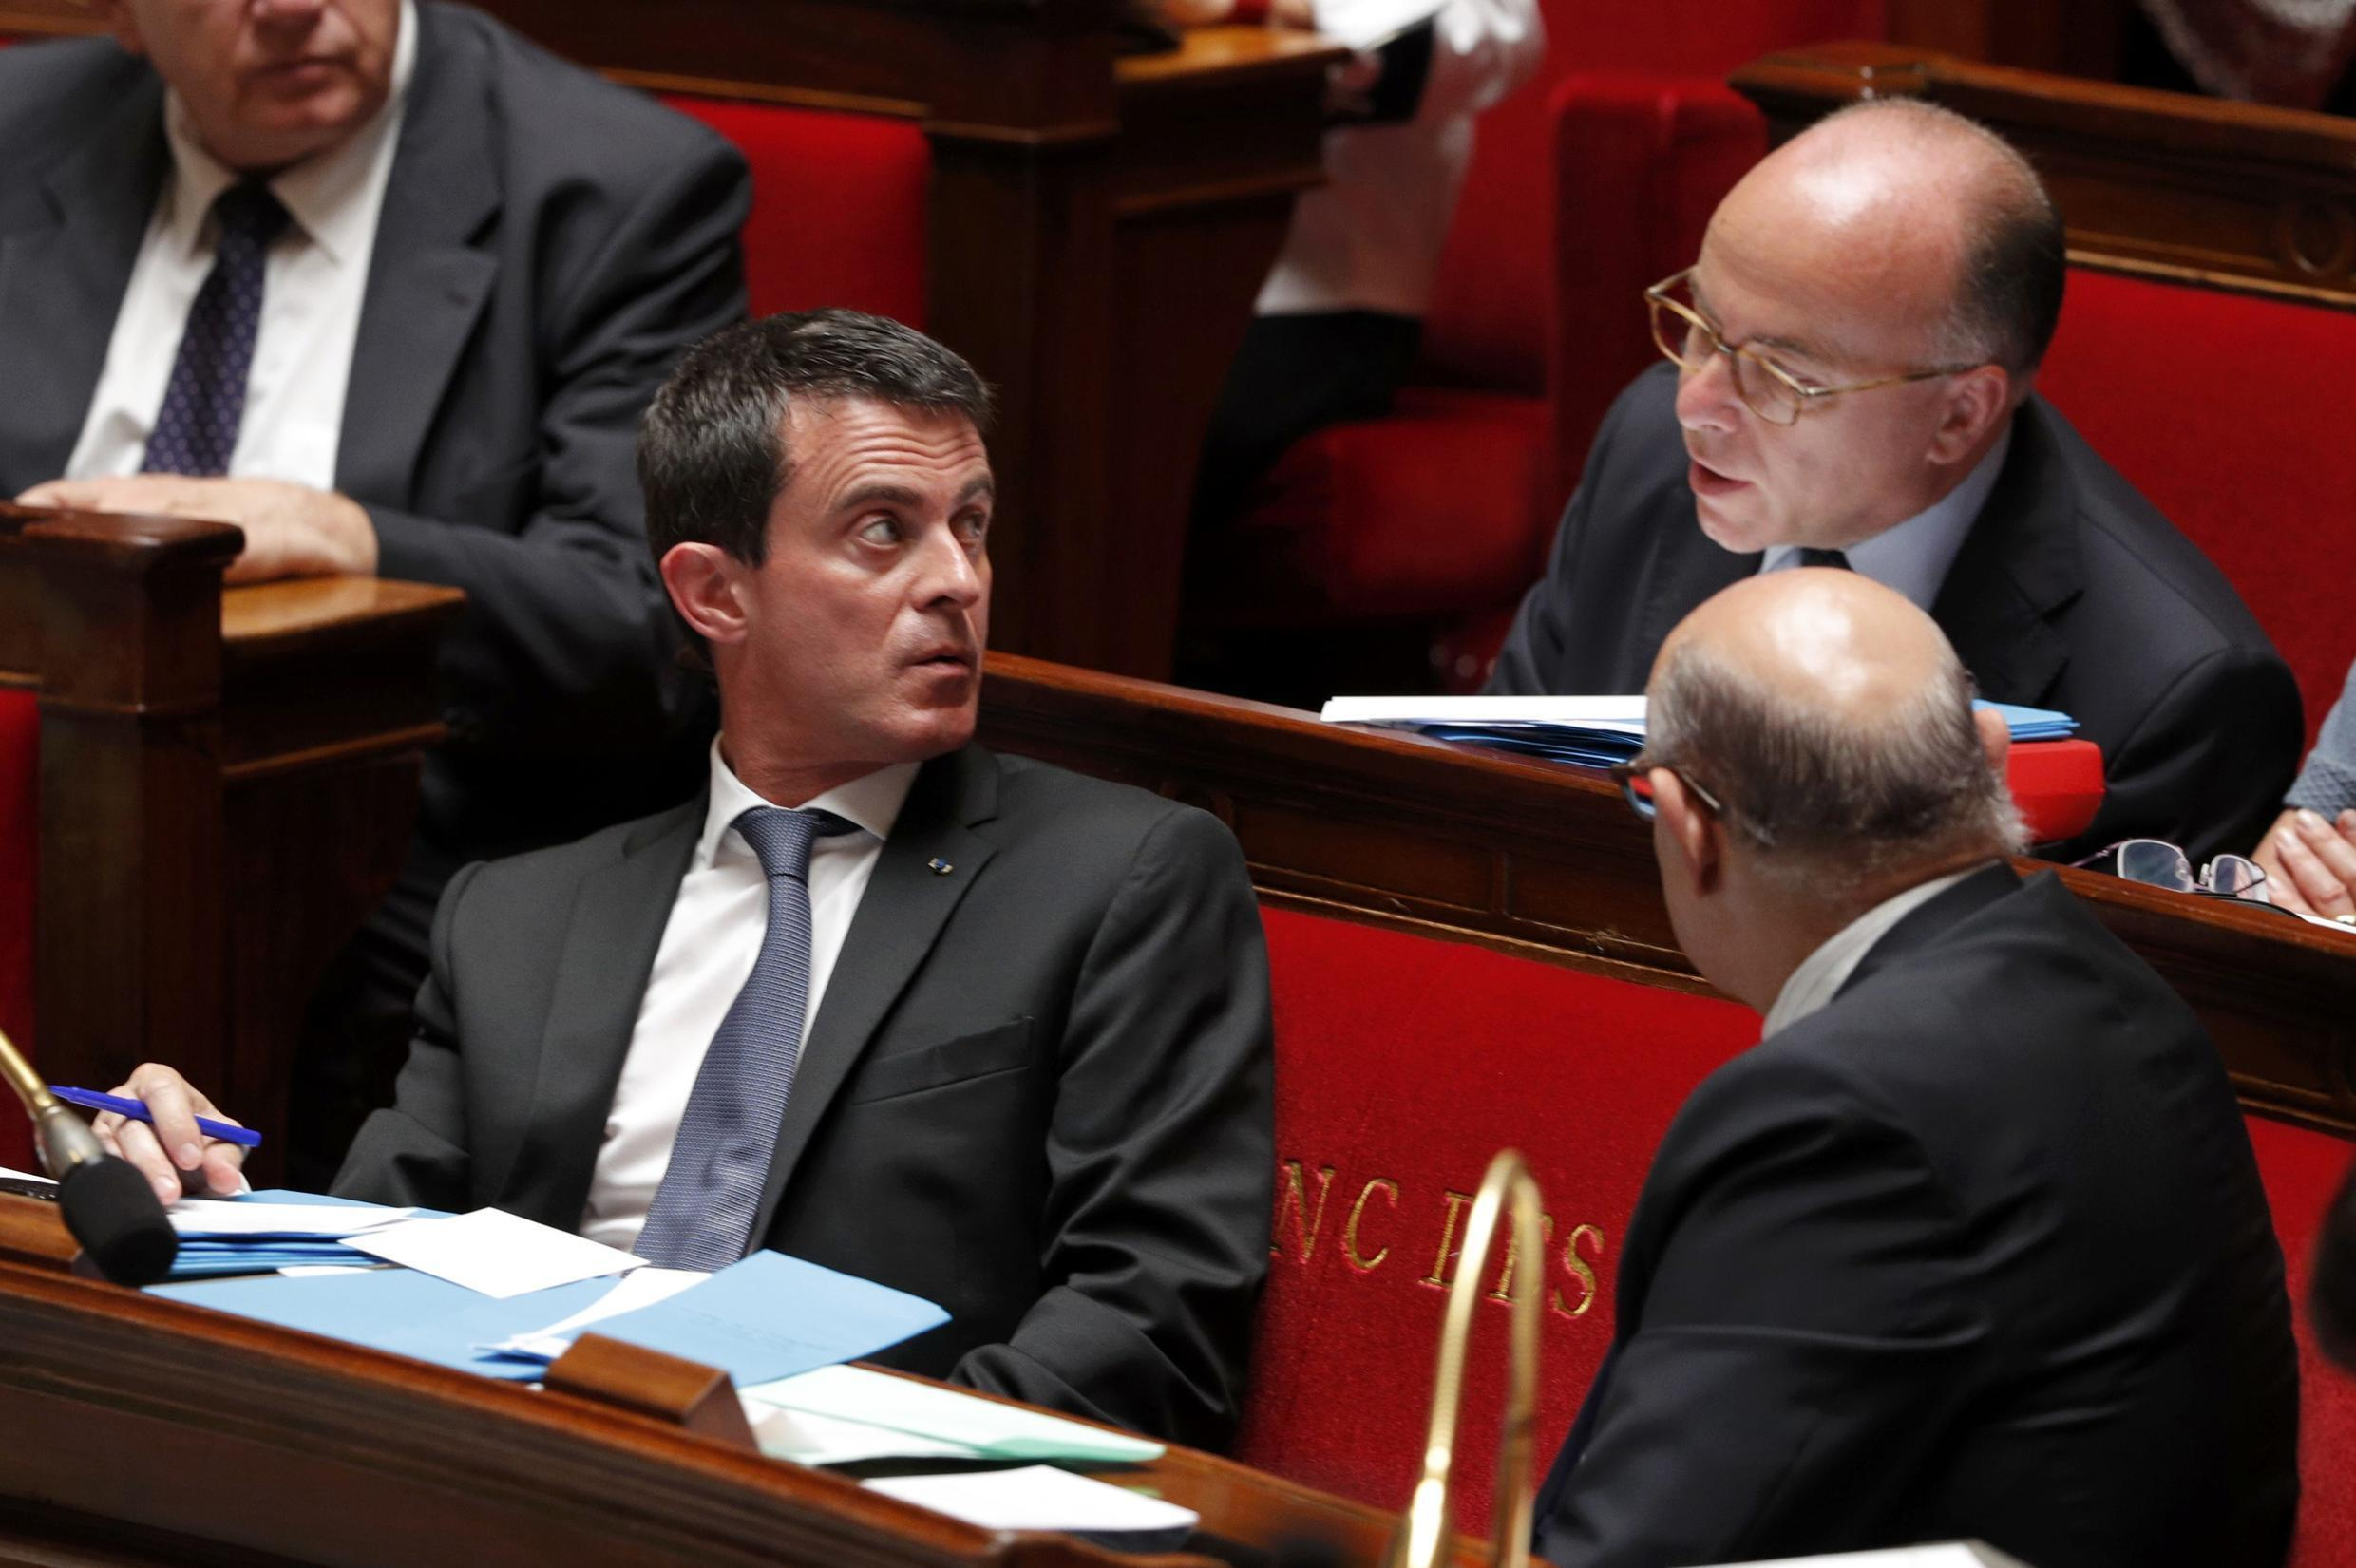 French Prime Minister Manuel Valls (L) speaks with Interior Minister Bernard Cazeneuve during the parliamentary debate on the state of emergency